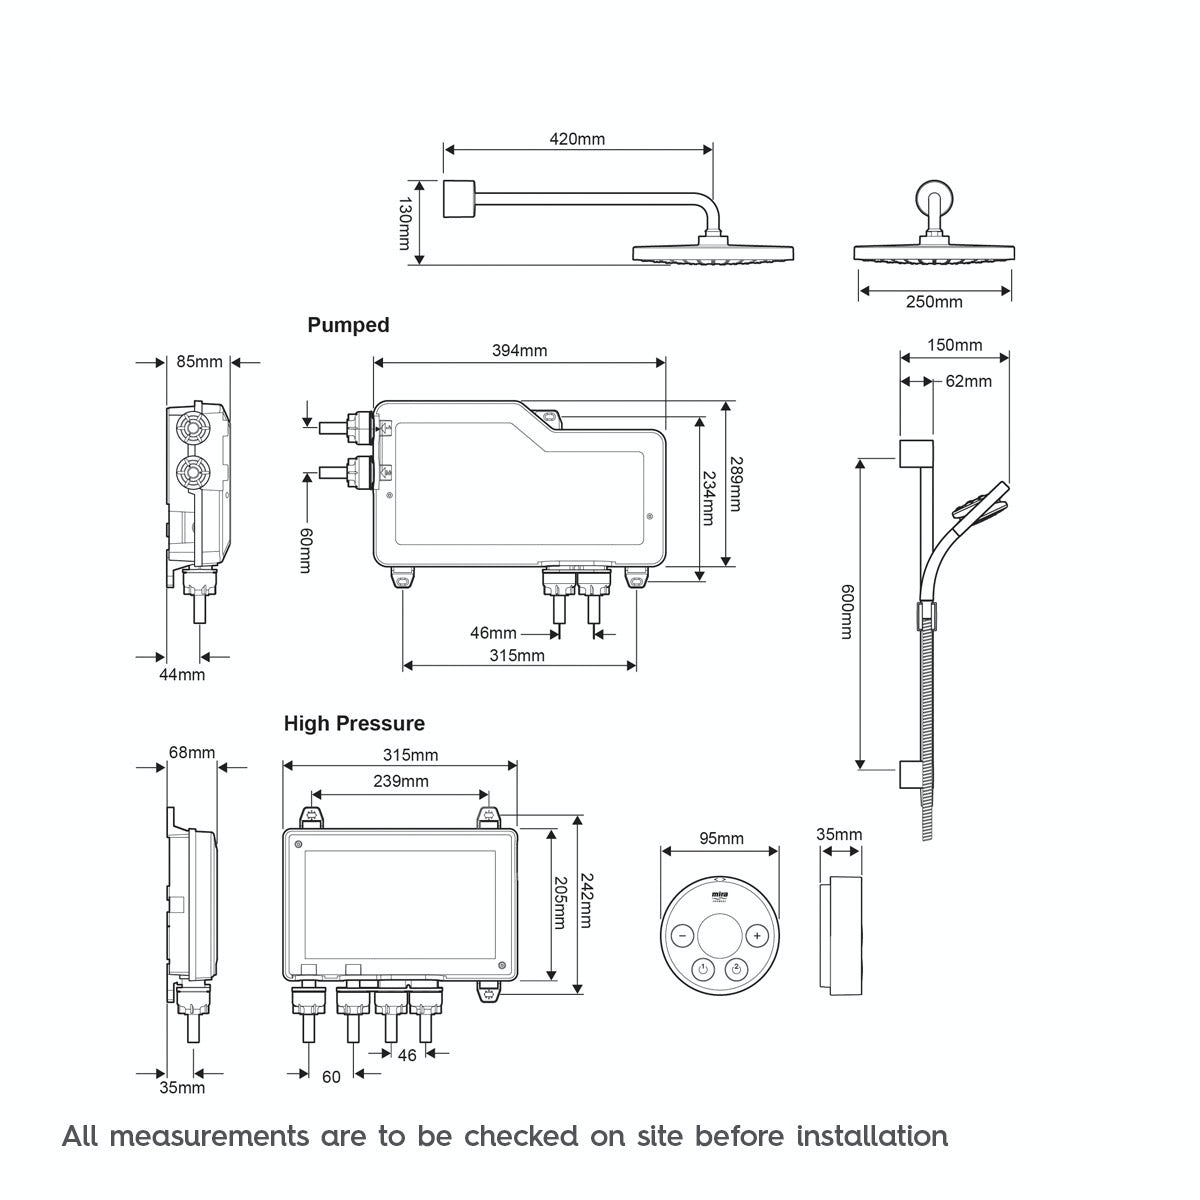 Dimensions for Mira Platinum dual rear fed digital shower pumped